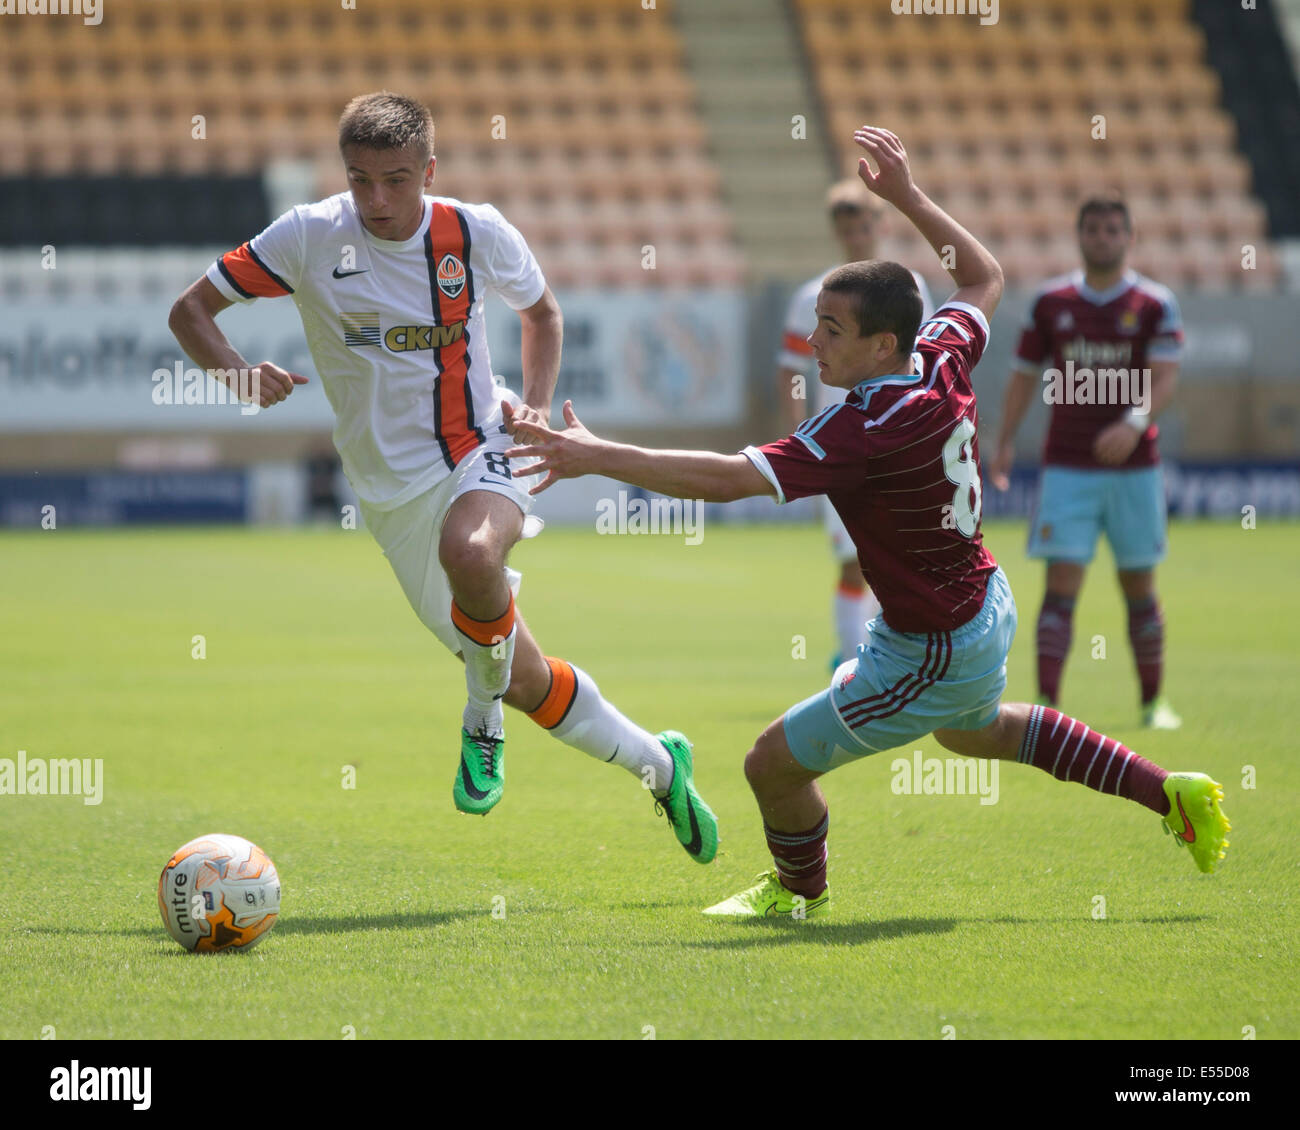 Cambridge, UK. 19th July, 2014. Pre Season Friendly. Shakhtar Donetsk versus West Ham United in the Absolute Sports - Stock Image